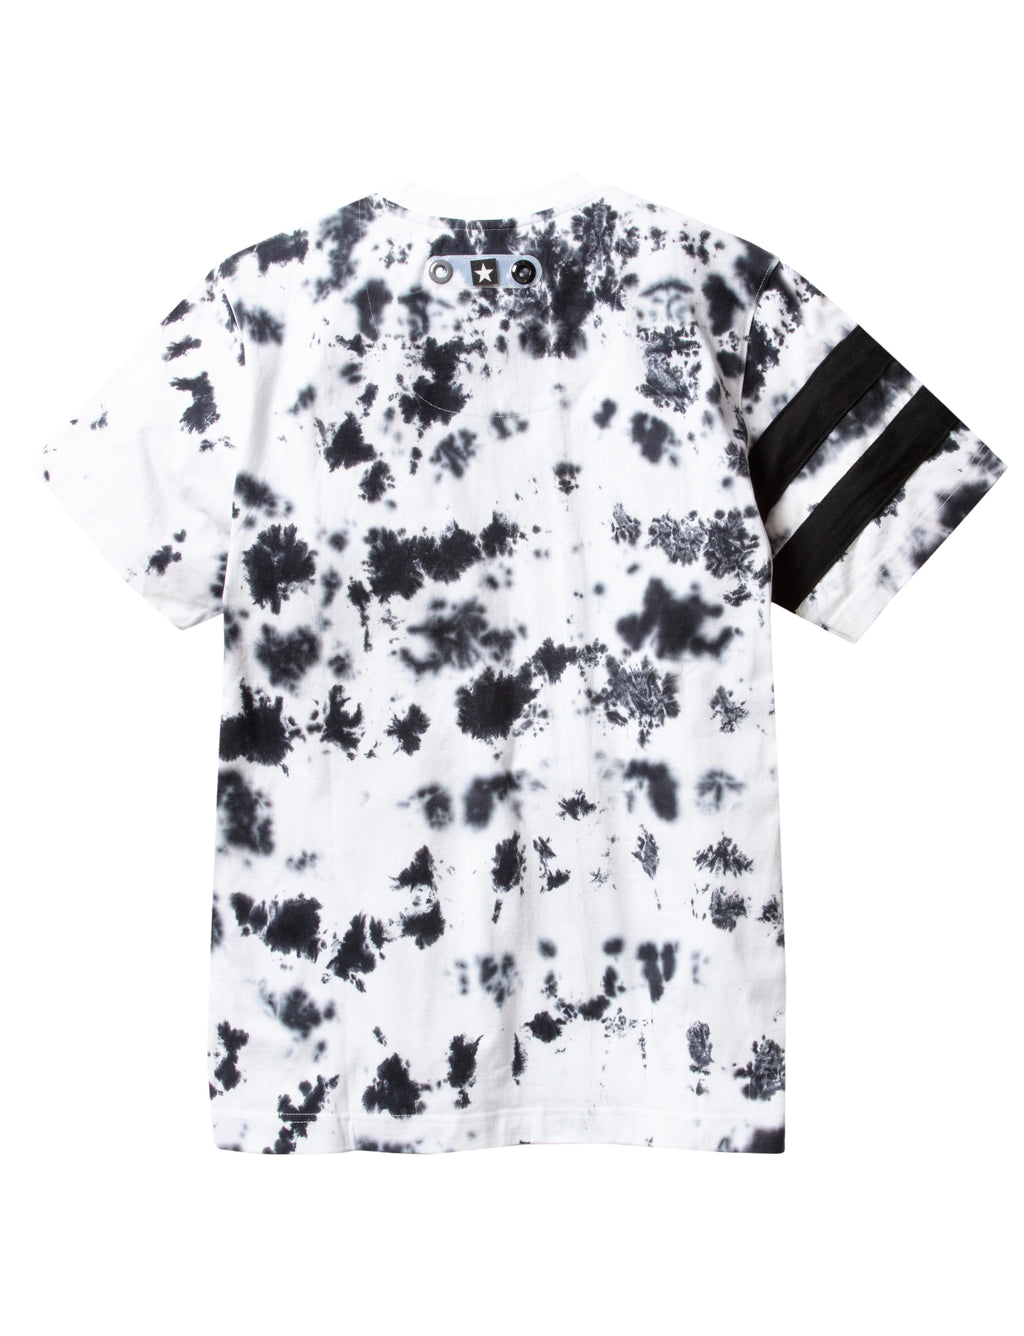 Regatta Tie Dye Graphic Tee